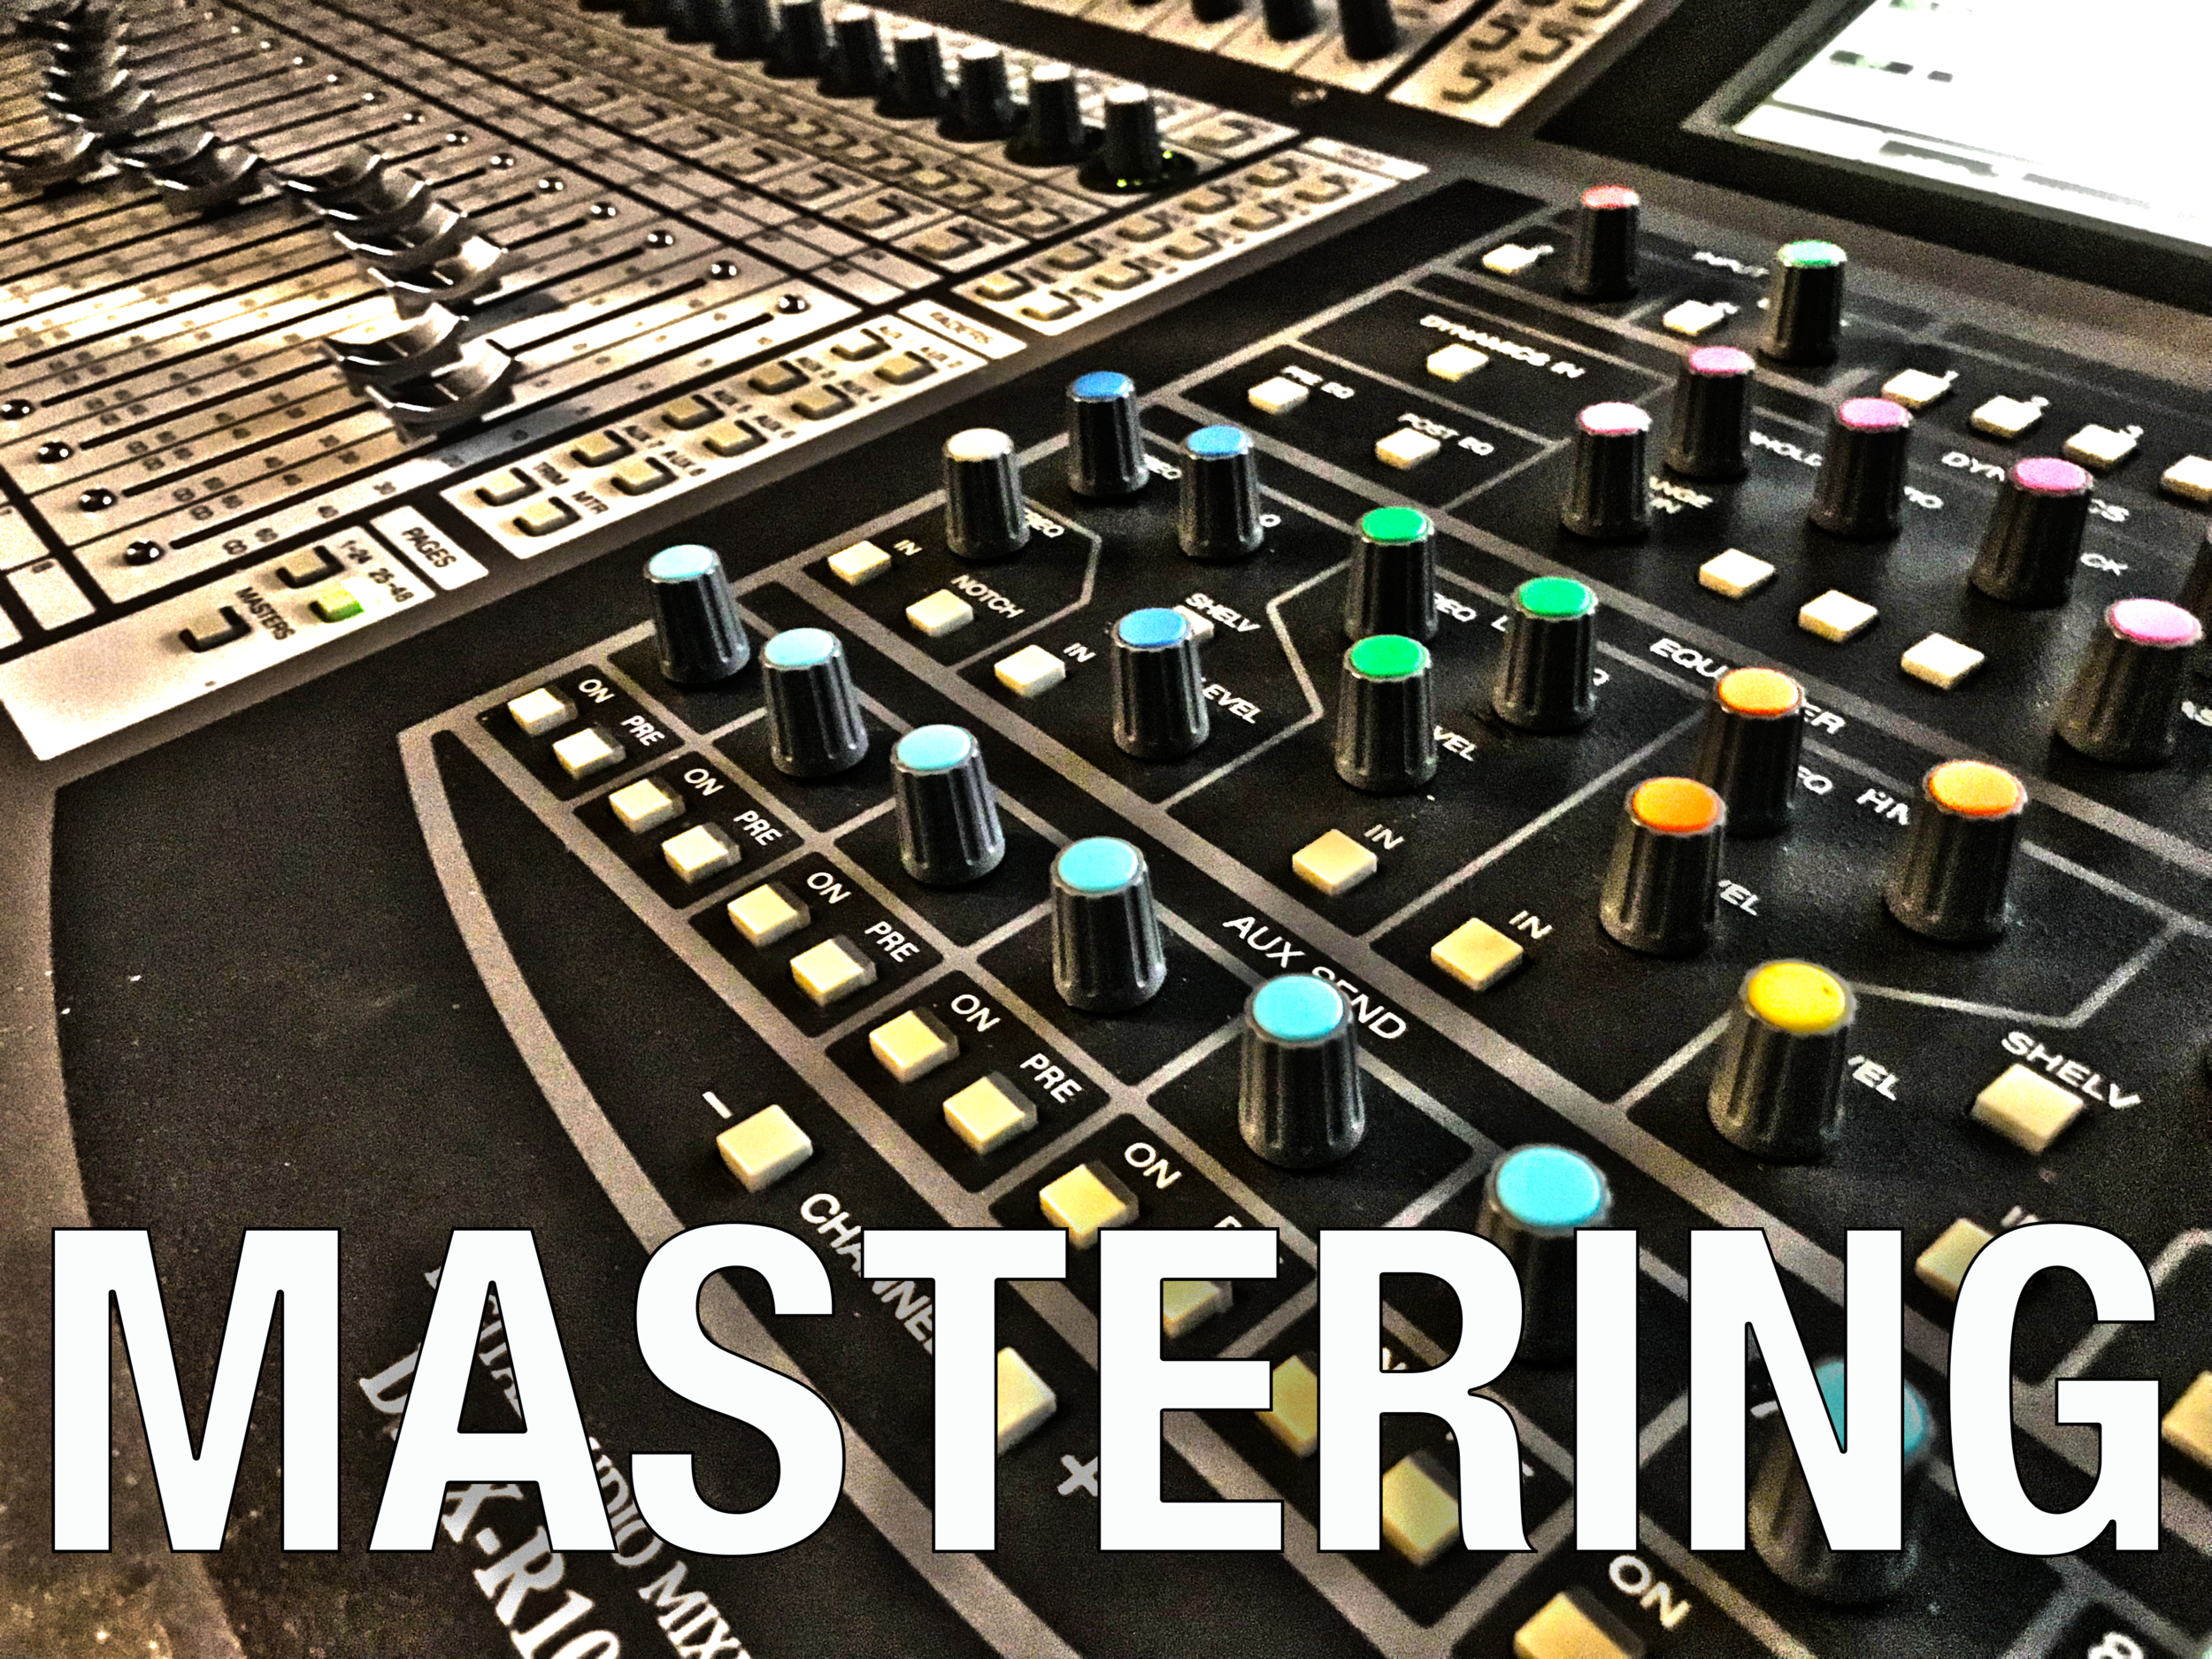 - I can create a production-ready final product for you that will translate beautifully and accurately through all types of playback systems and environments.